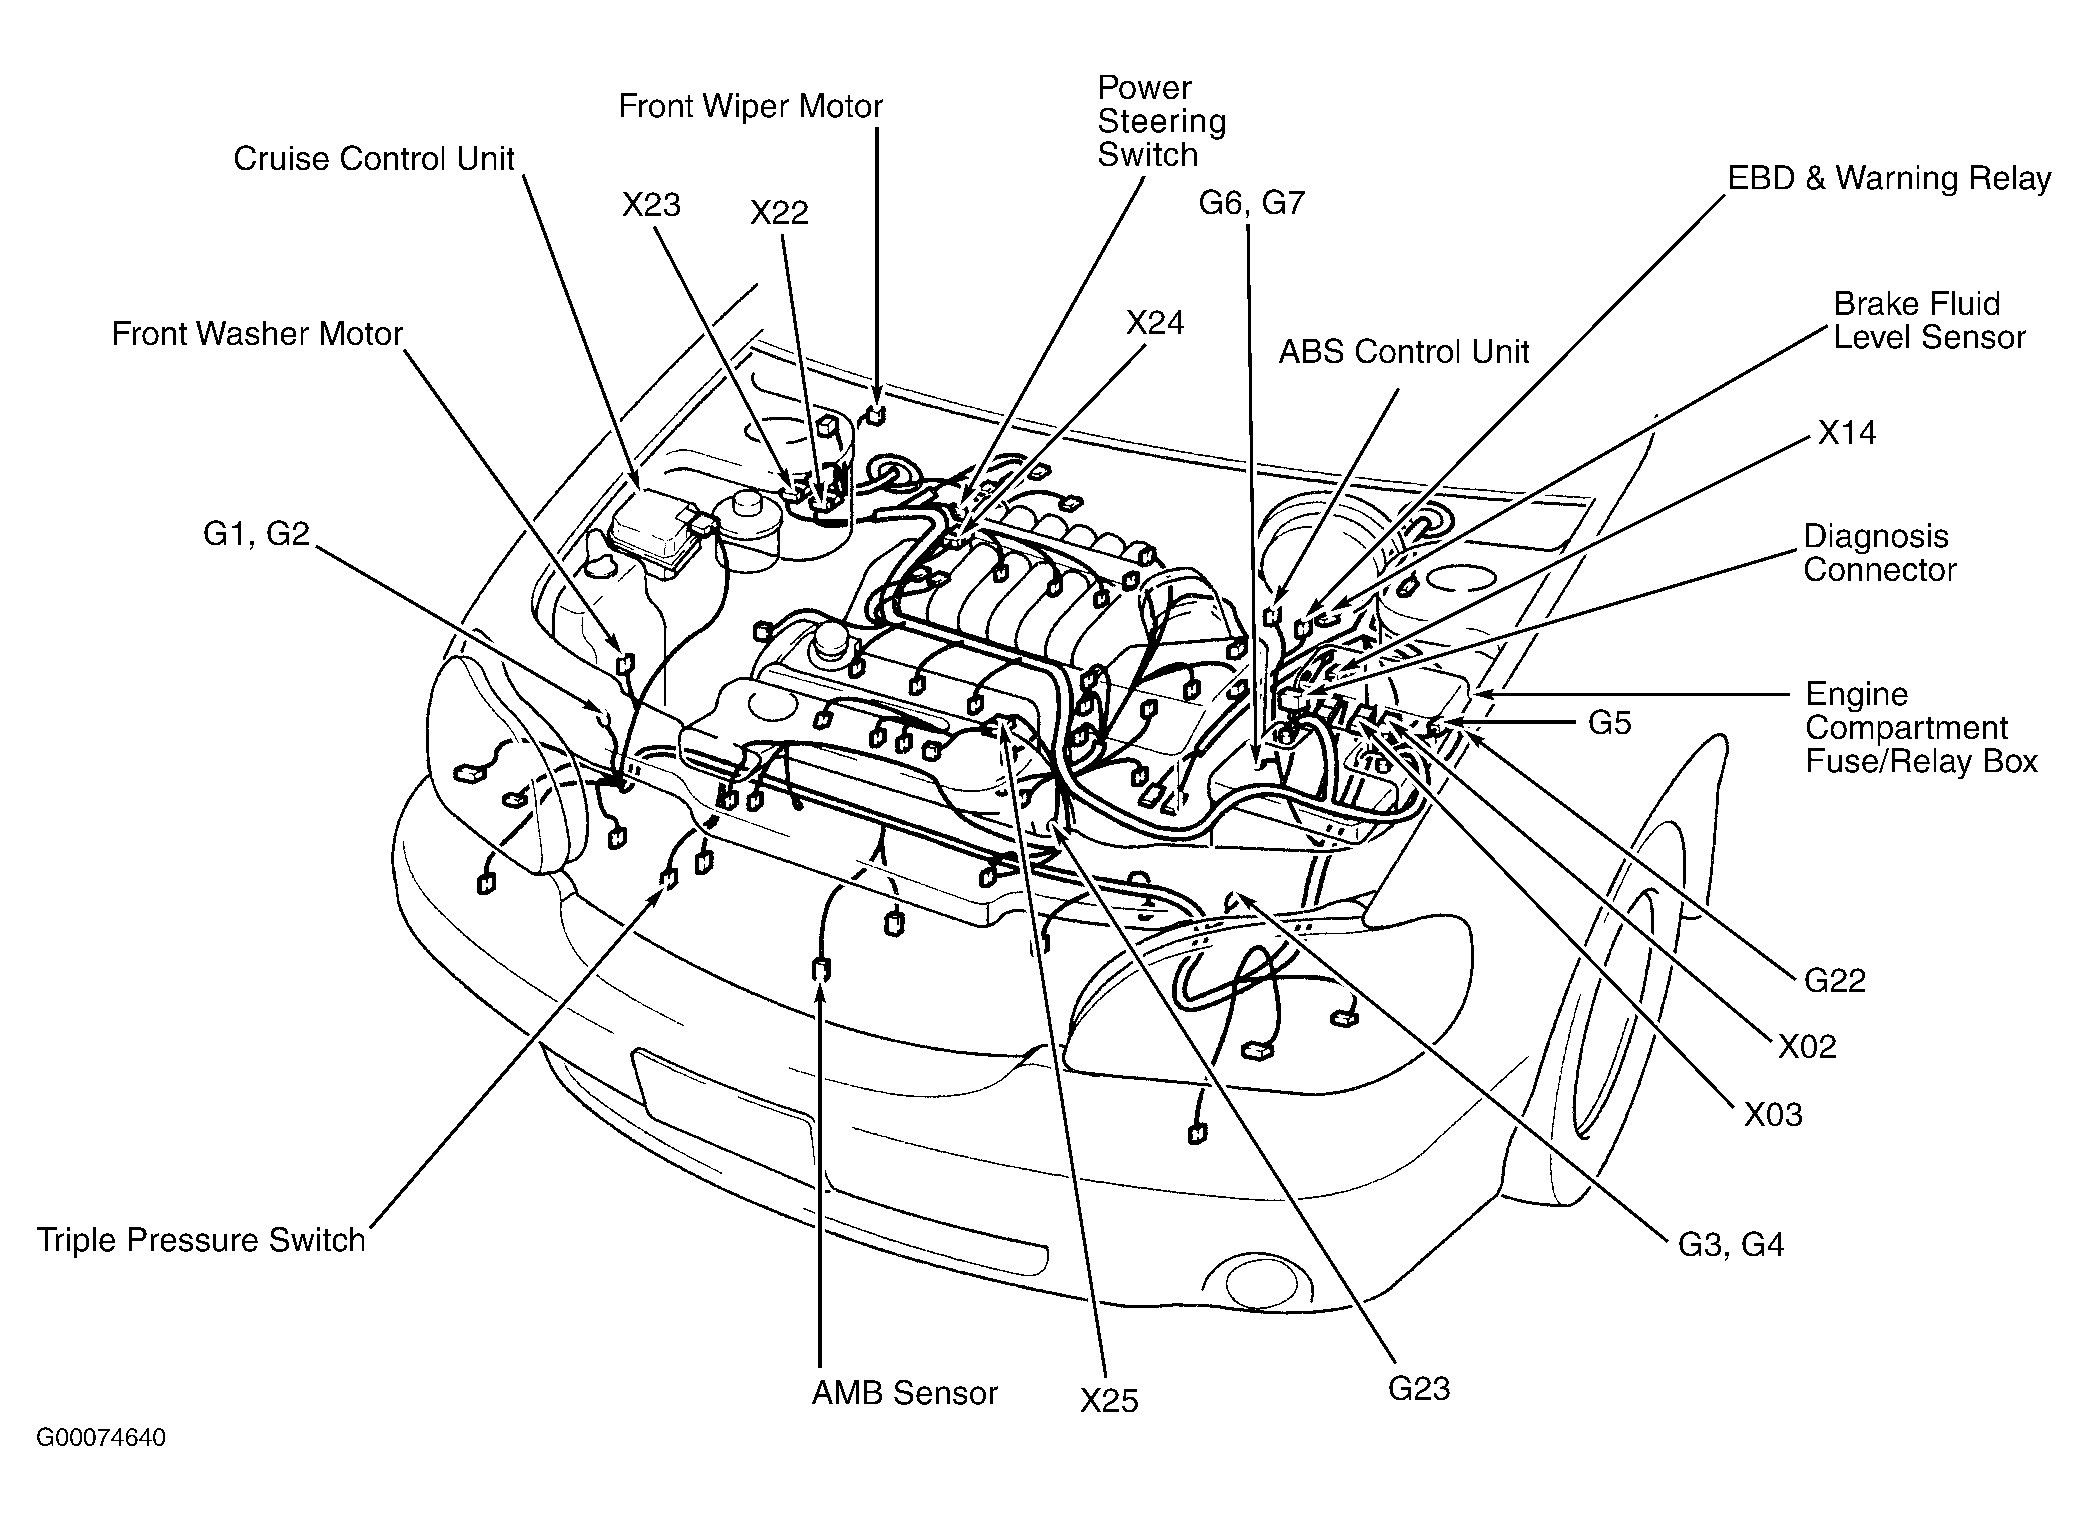 2003 kia rio engine diagram kia sportage clutch diagram